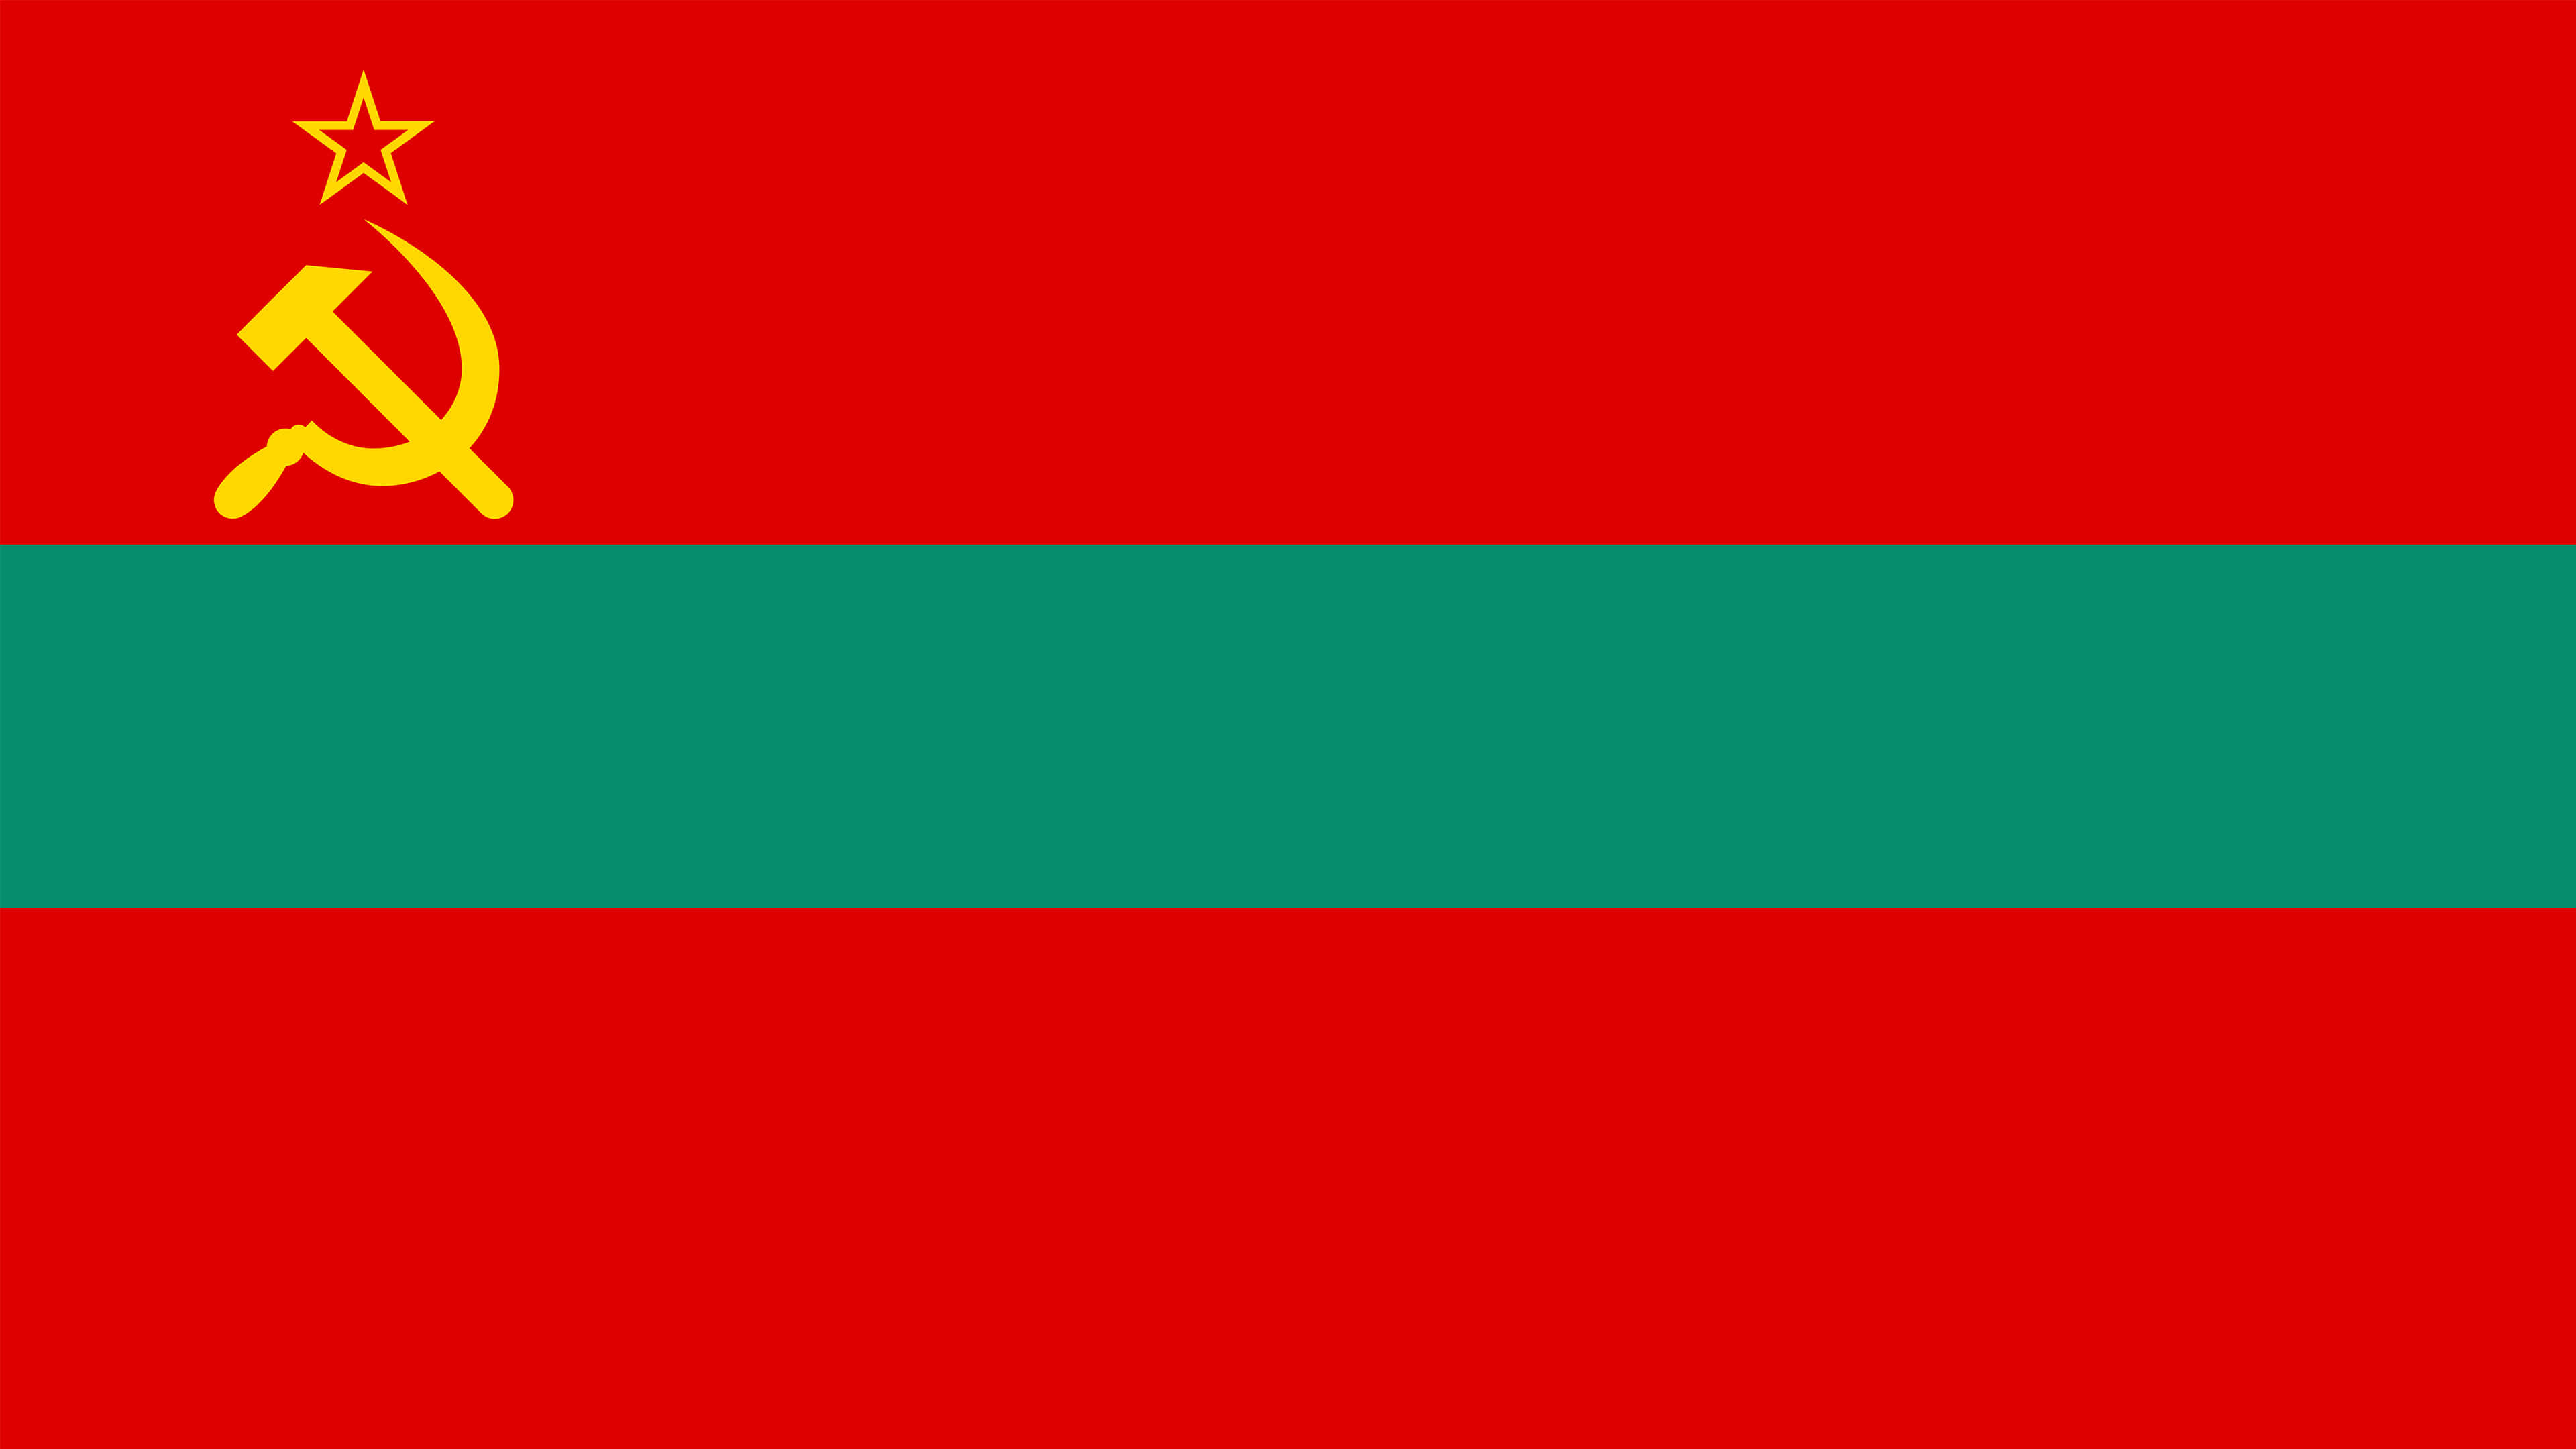 transnistria flag uhd 4k wallpaper